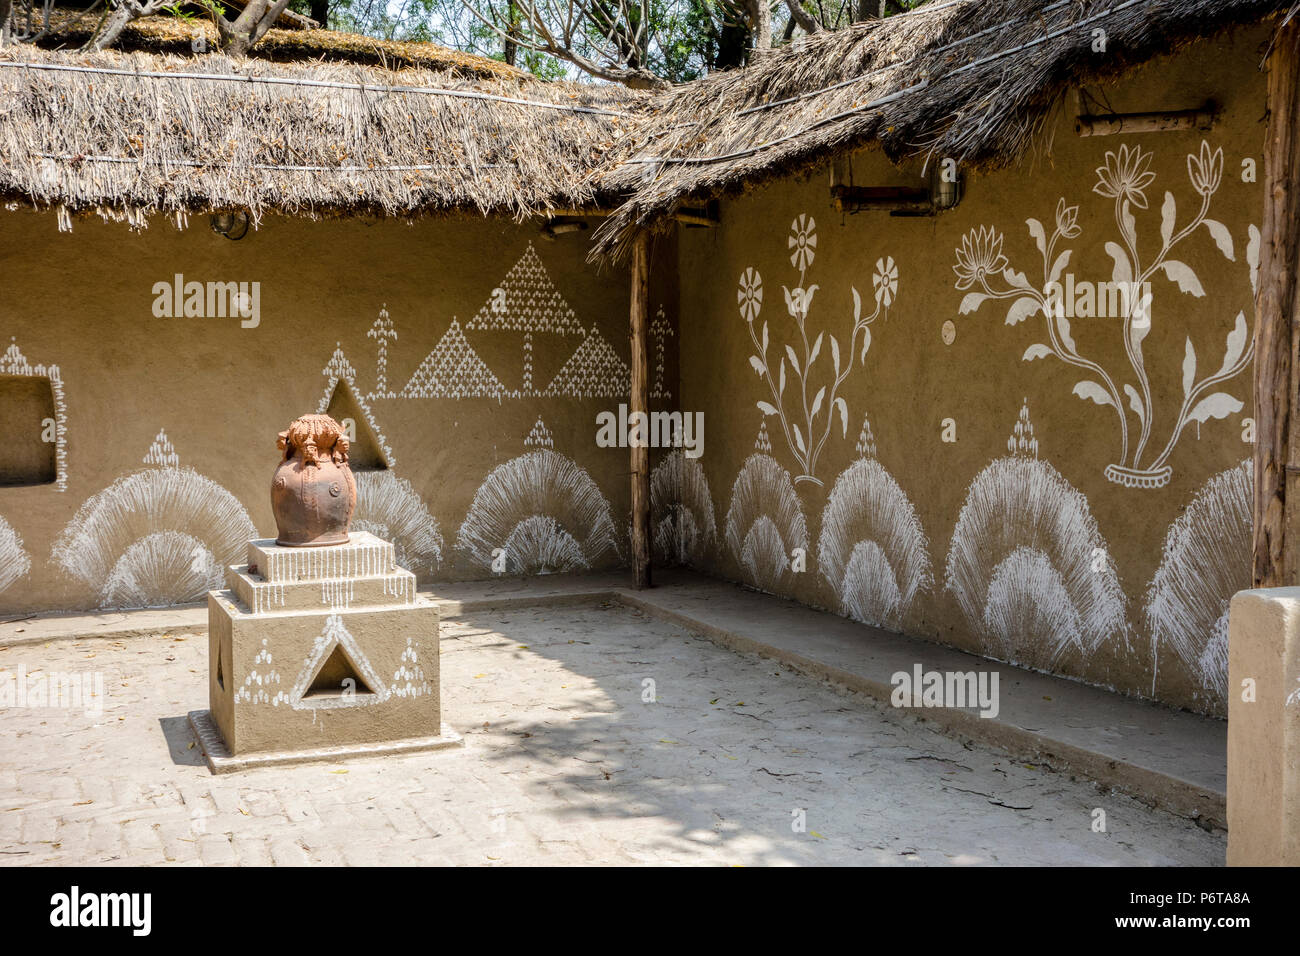 Exhibit of wall paintings on an Odisha Courtyard, National Crafts Museum, New Delhi, Delhi, India - Stock Image